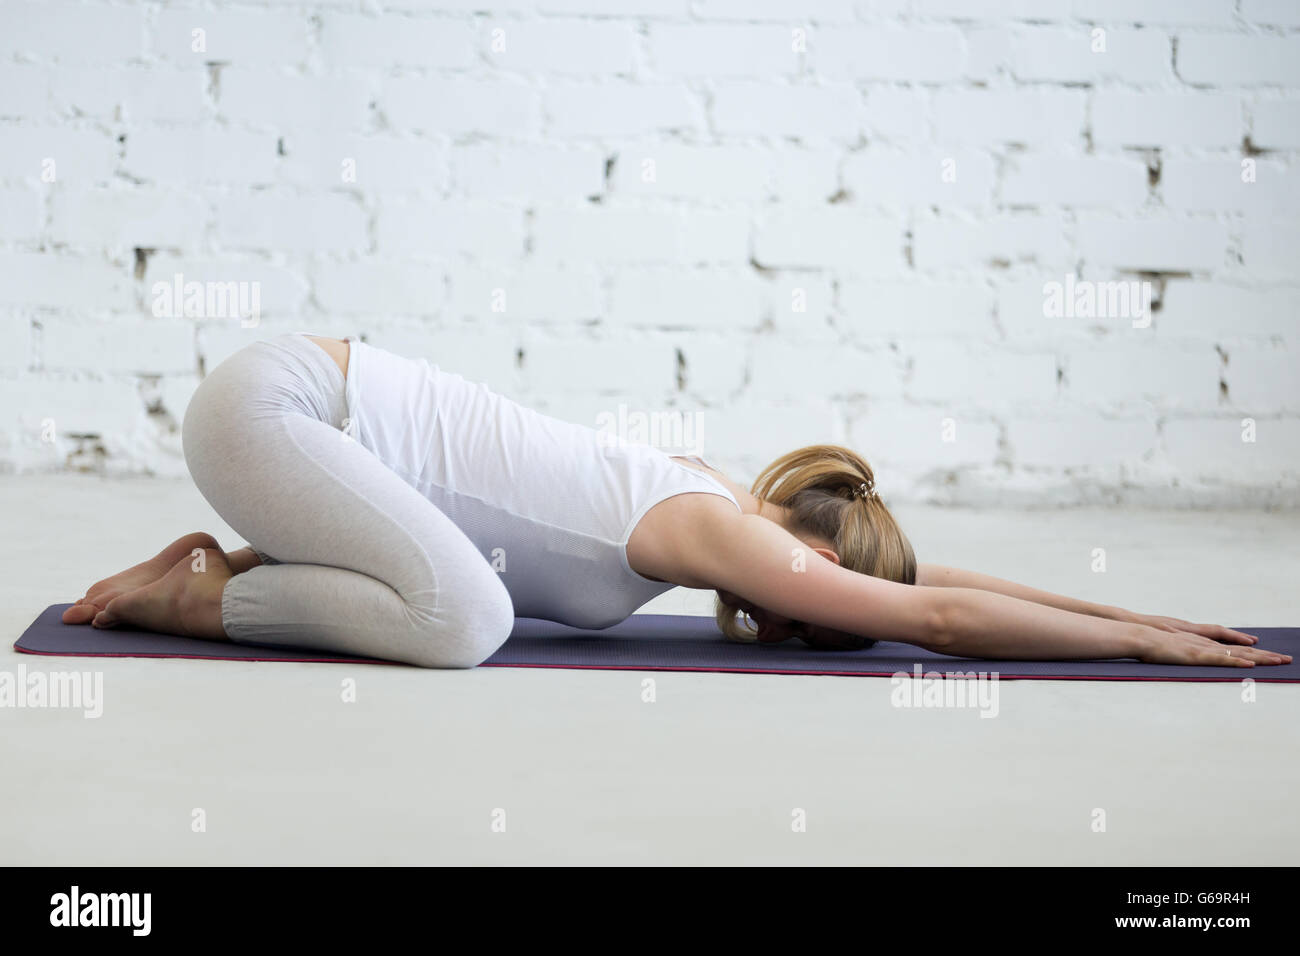 Pregnancy Yoga and Fitness. Portrait of young pregnant yoga model working out in loft with white walls. Pregnant - Stock Image